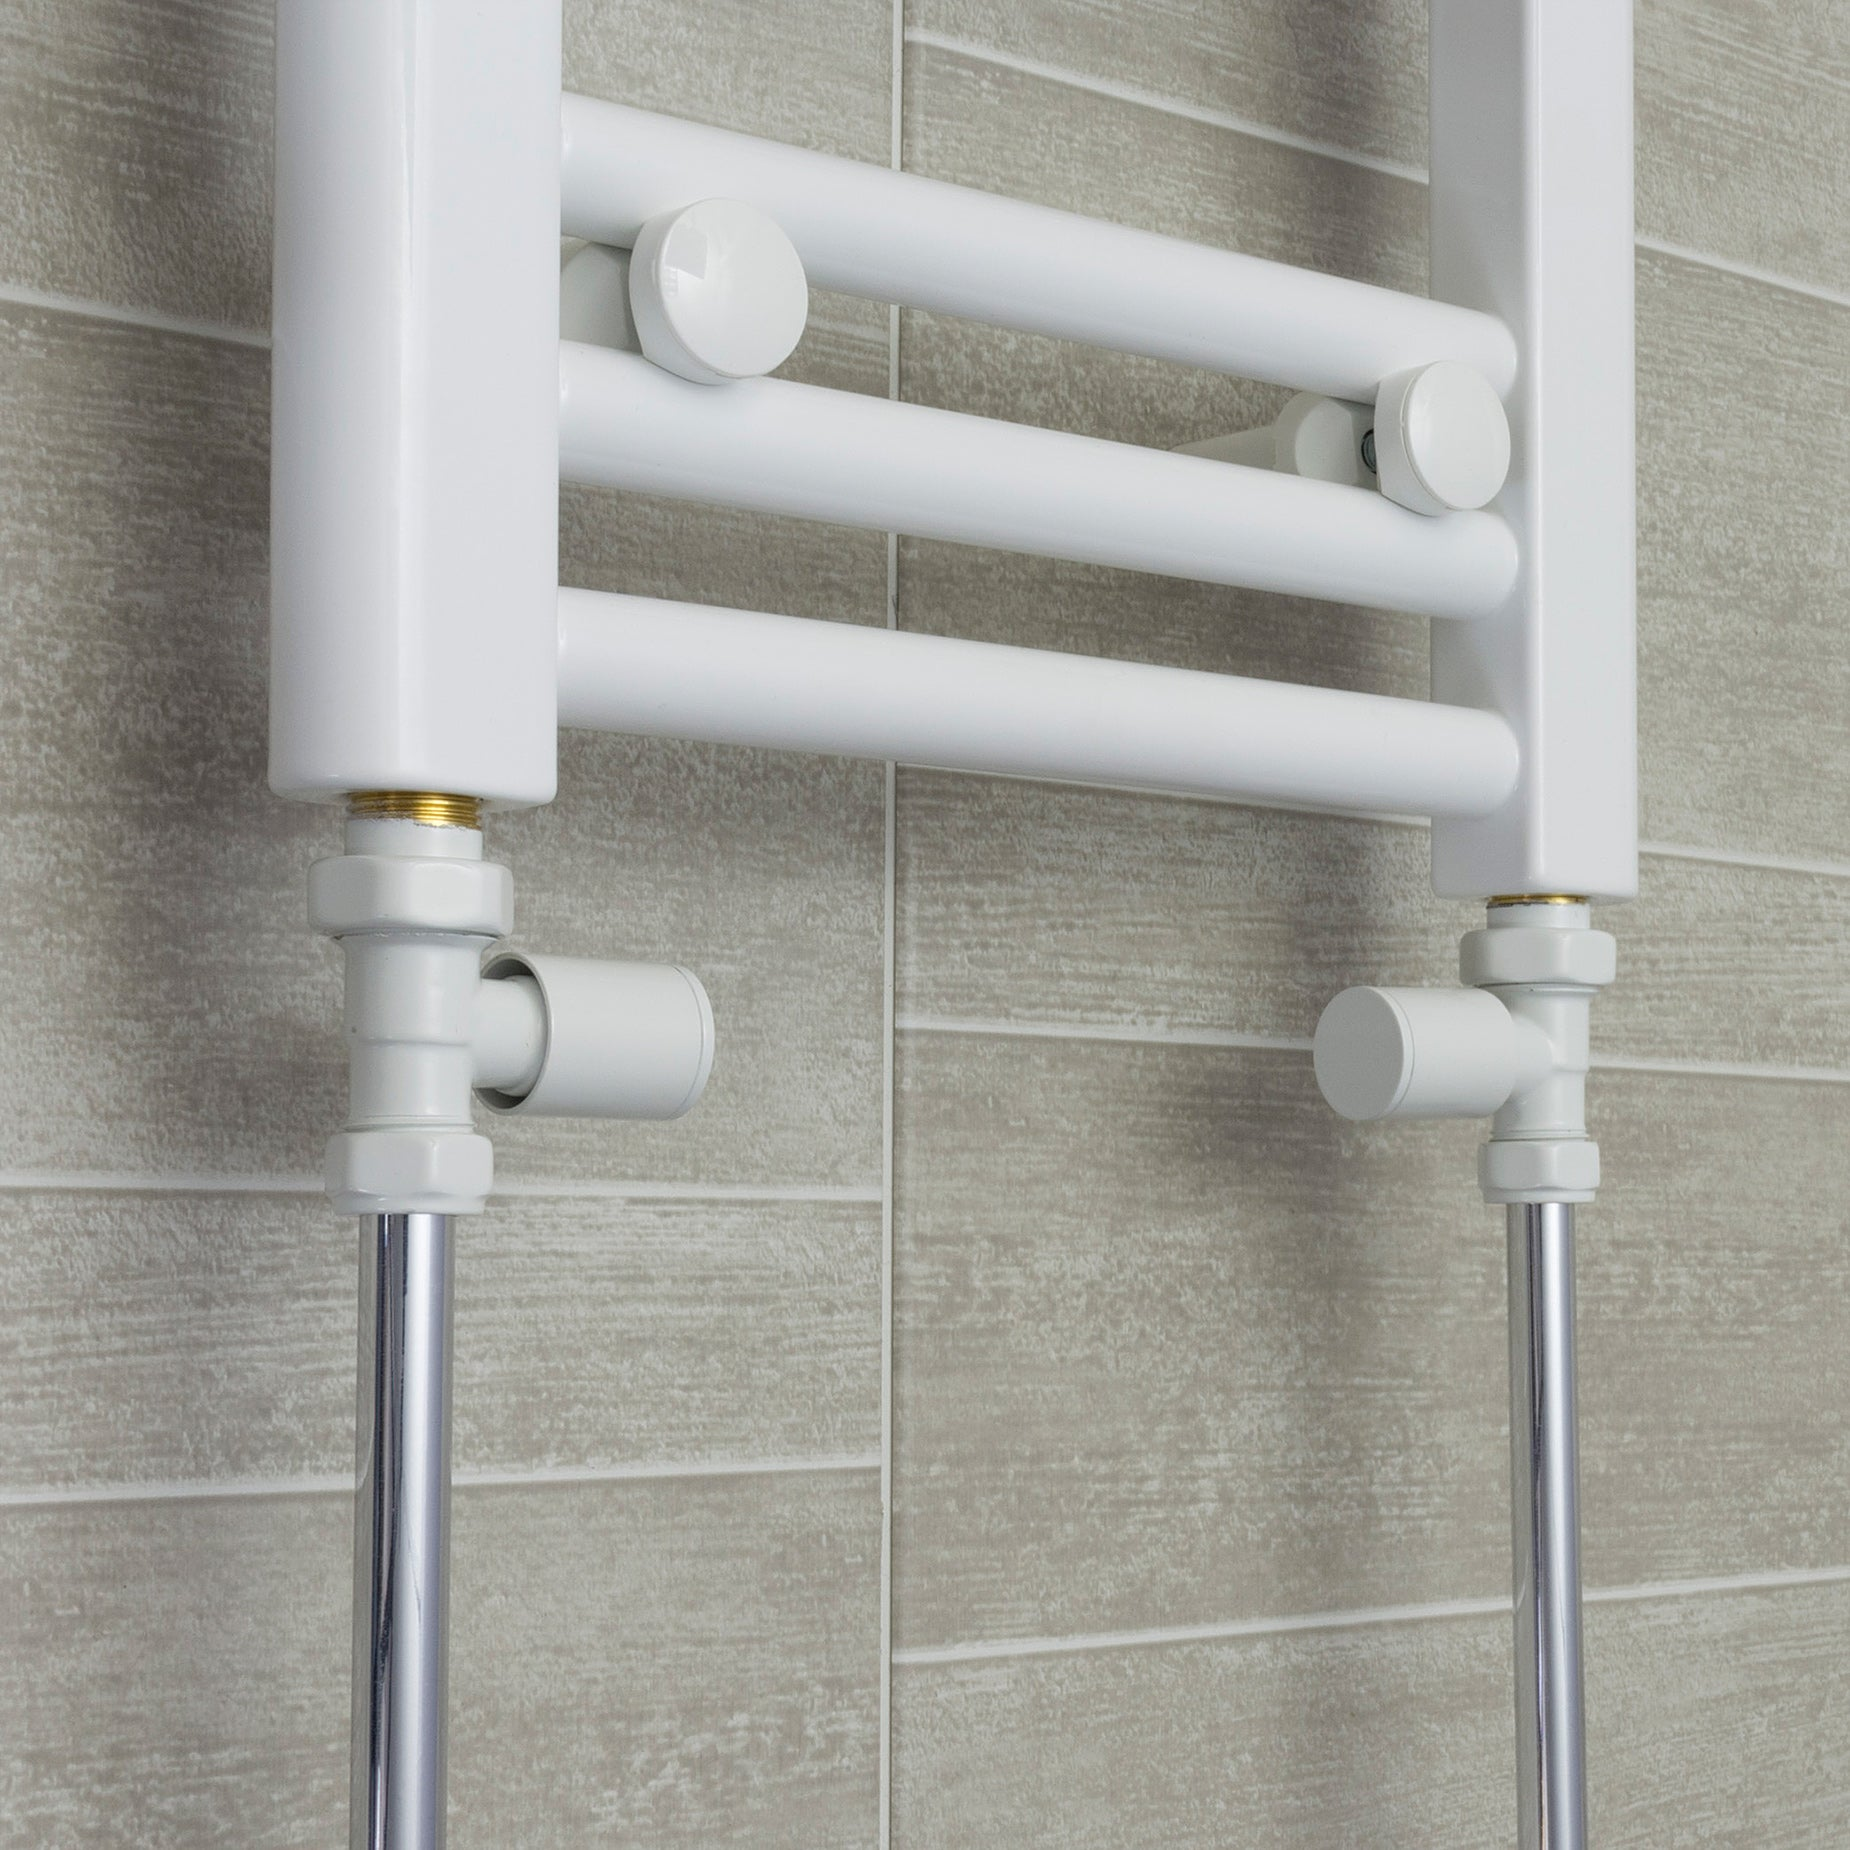 700mm Wide 1500mm High White Towel Rail Radiator With Straight Valve